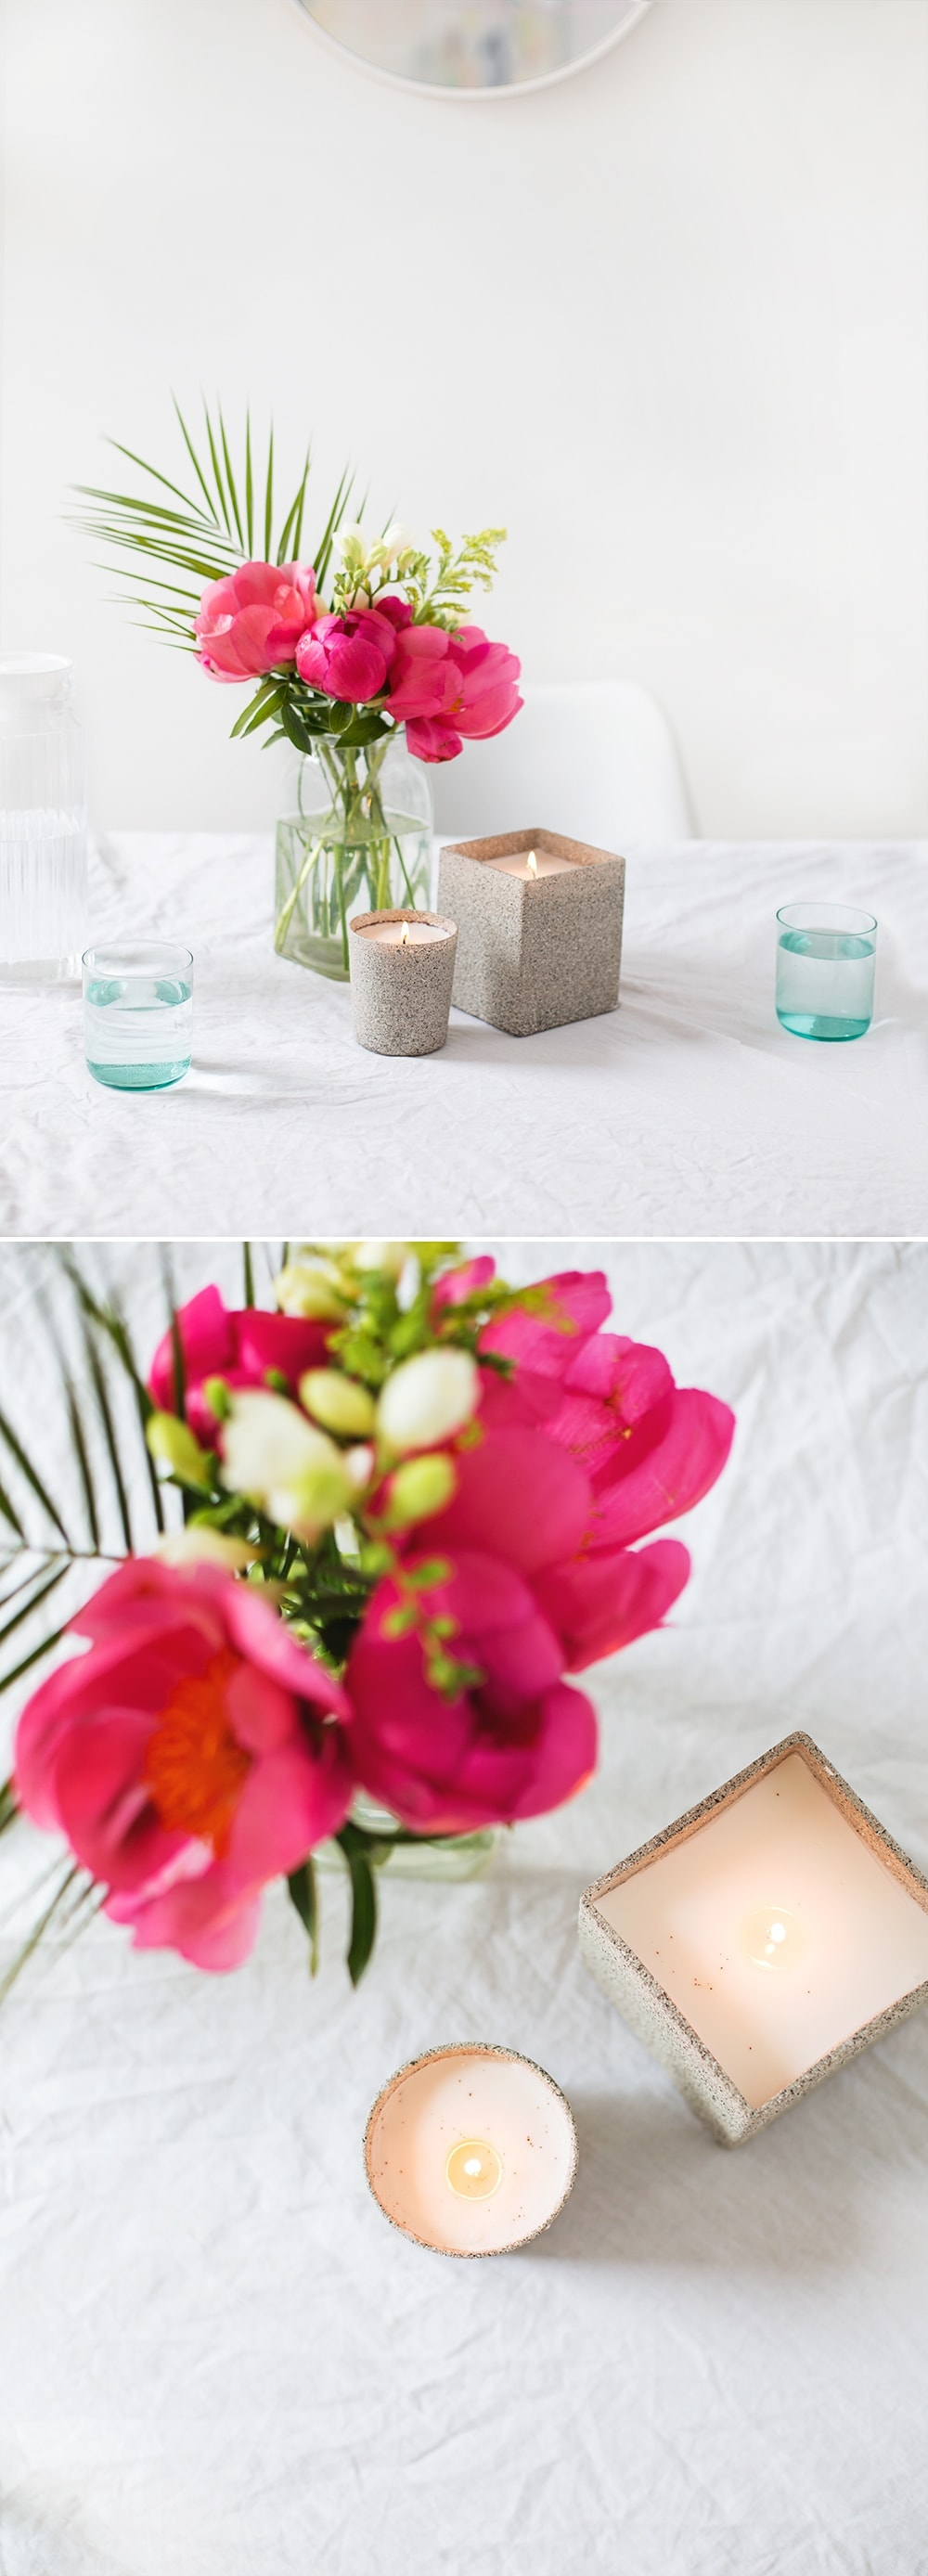 DIY stone scented candle